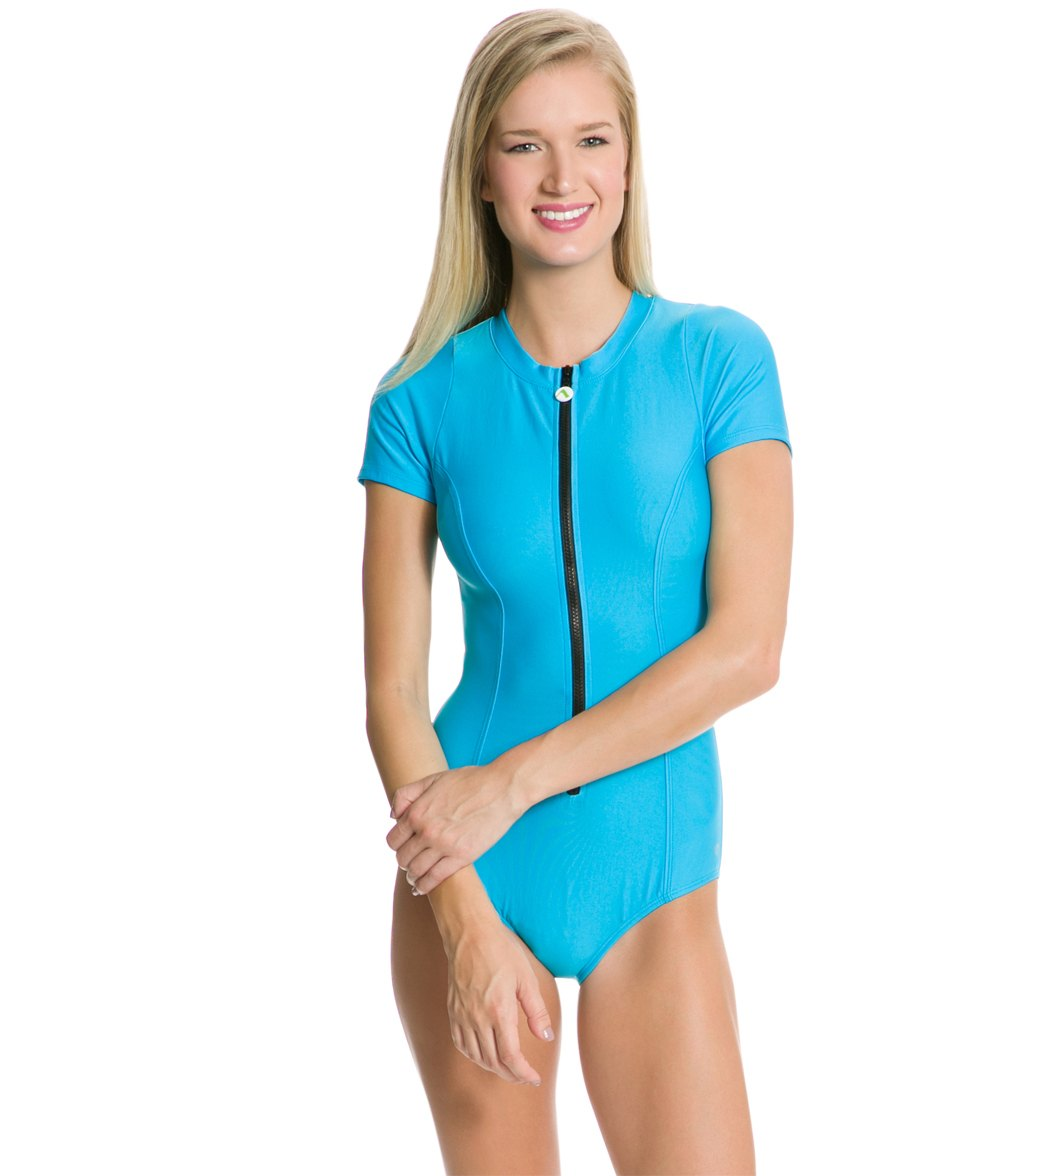 54ce7c9b86 Next Good Karma Solid Malibu Zip Short Sleeve One Piece Swimsuit at  SwimOutlet.com - Free Shipping